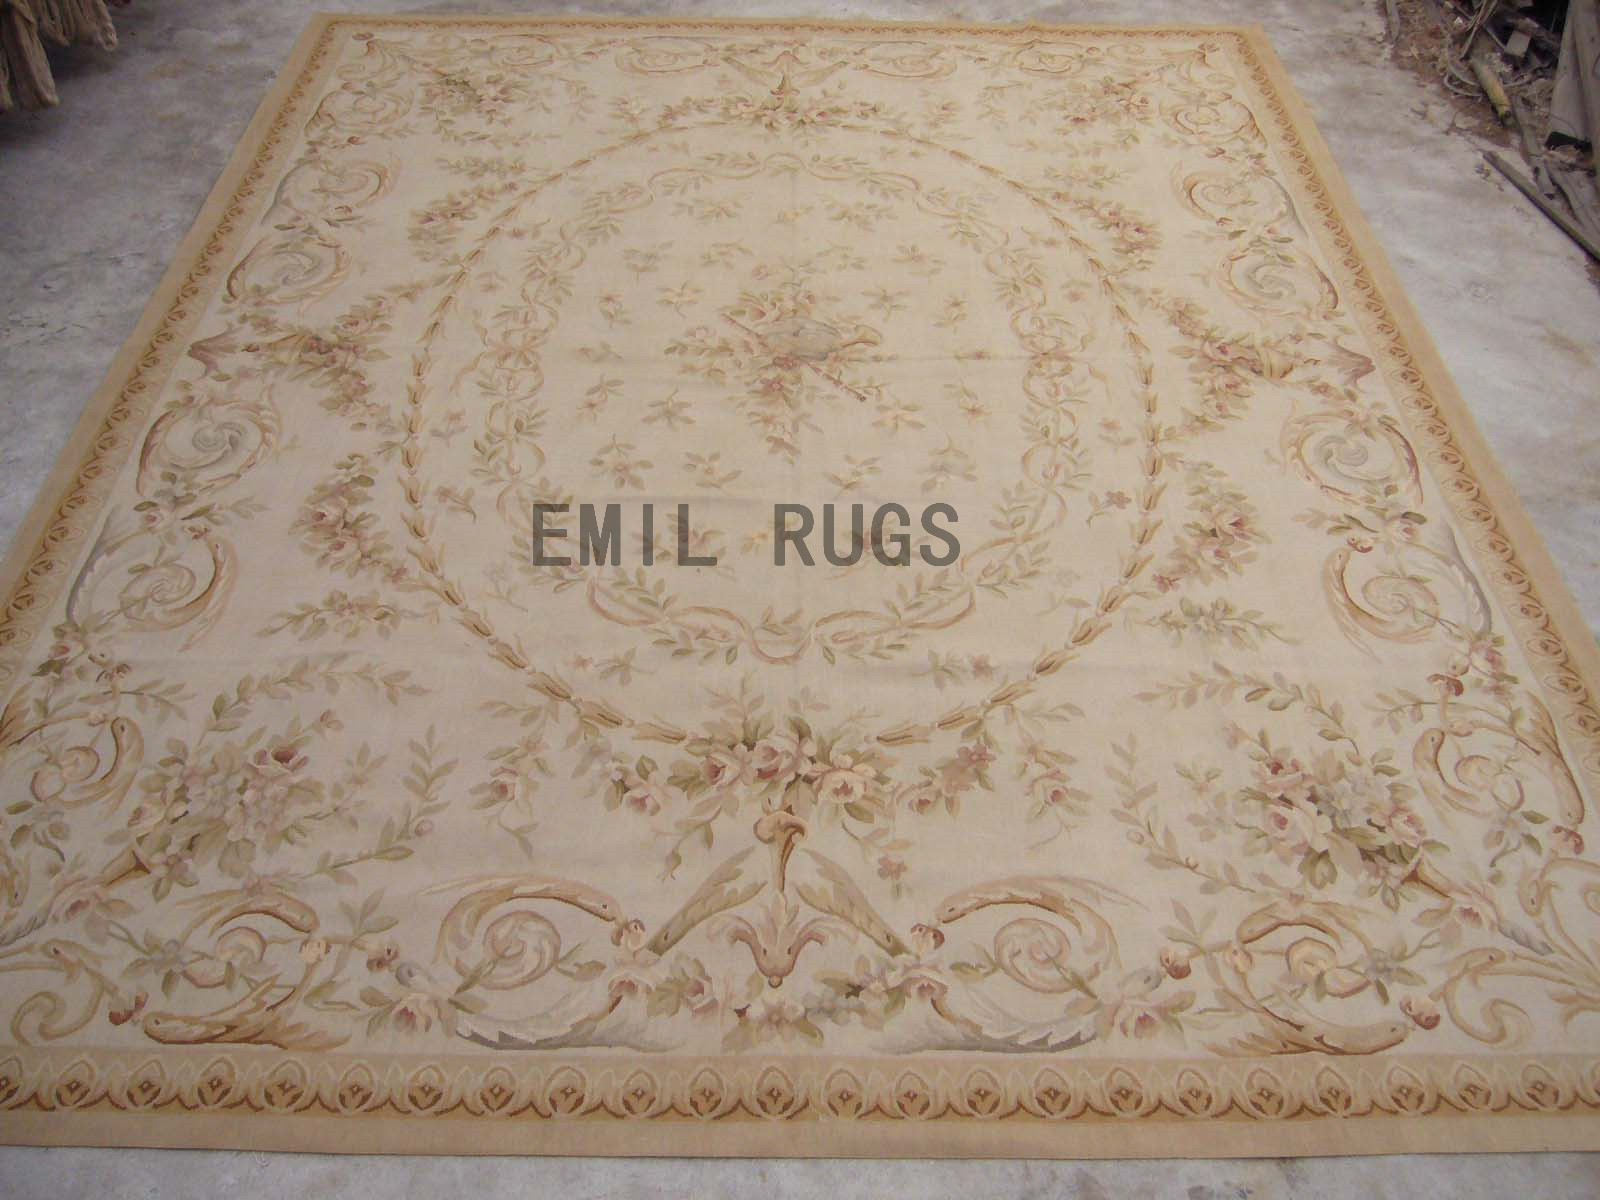 flat weave aubusson carpet Square 9.8' X 9.8' Ivory Field Ivory Border 100% New Zealand wool european handmade